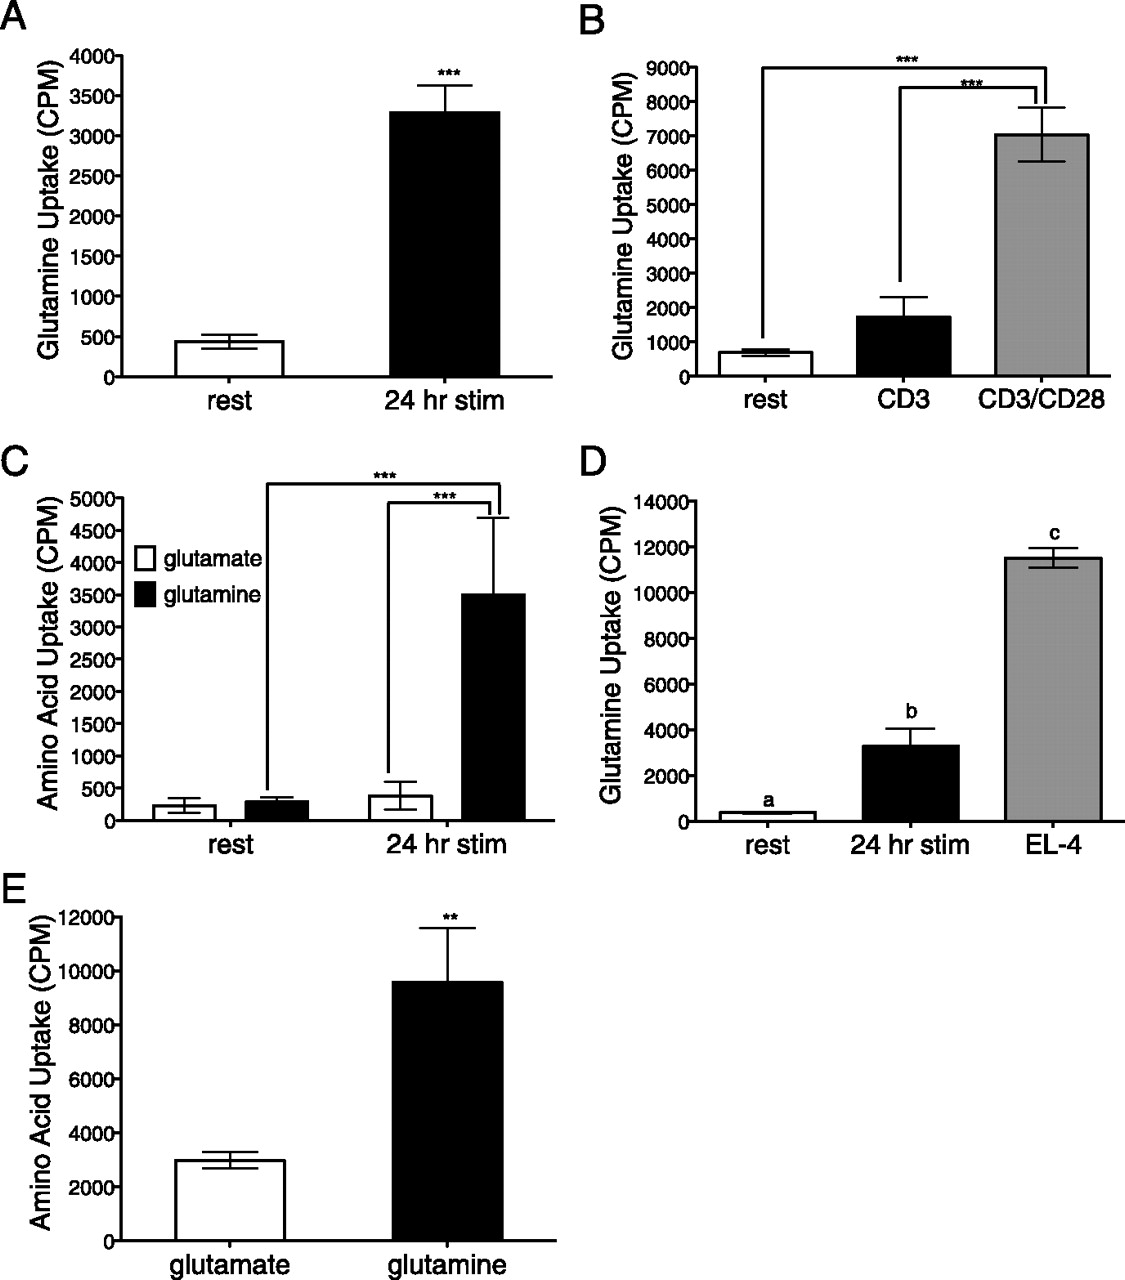 Glutamine Uptake And Metabolism Are Coordinately Regulated By Erk Mapk During T Lymphocyte